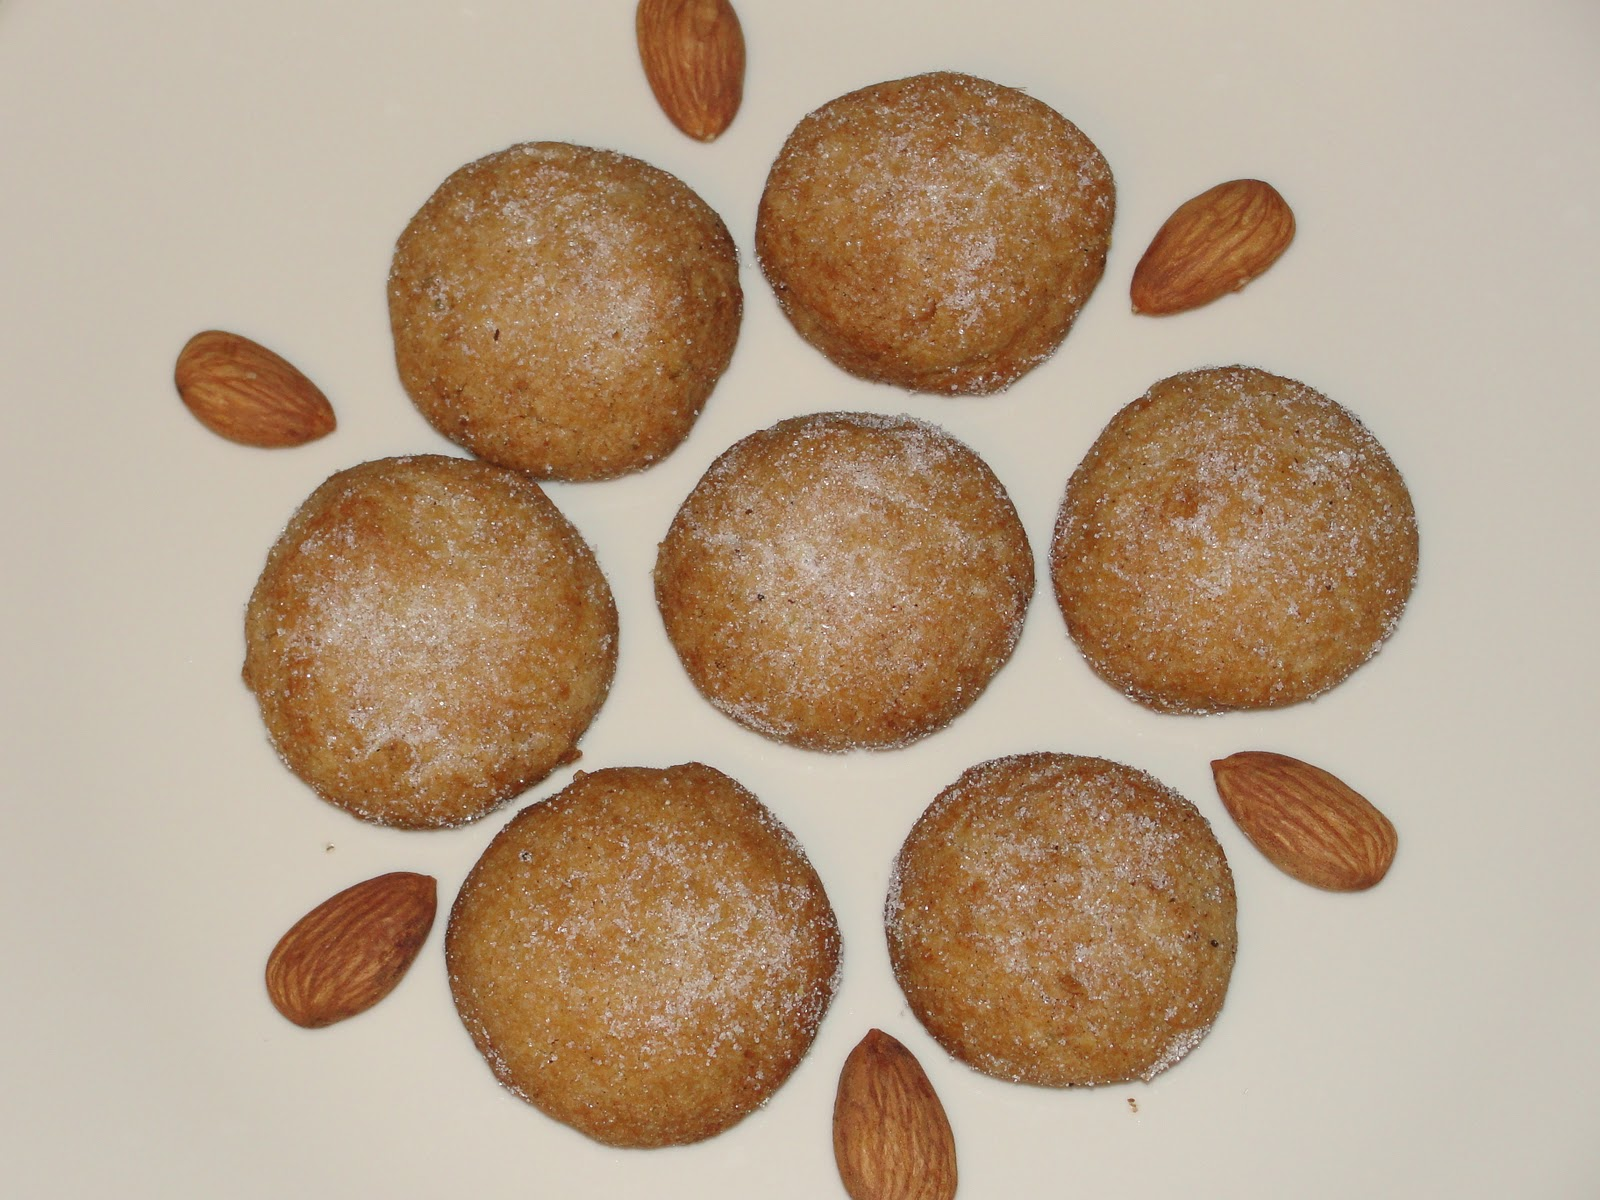 Sugar'N Spice: Whole Wheat Almond Cookies